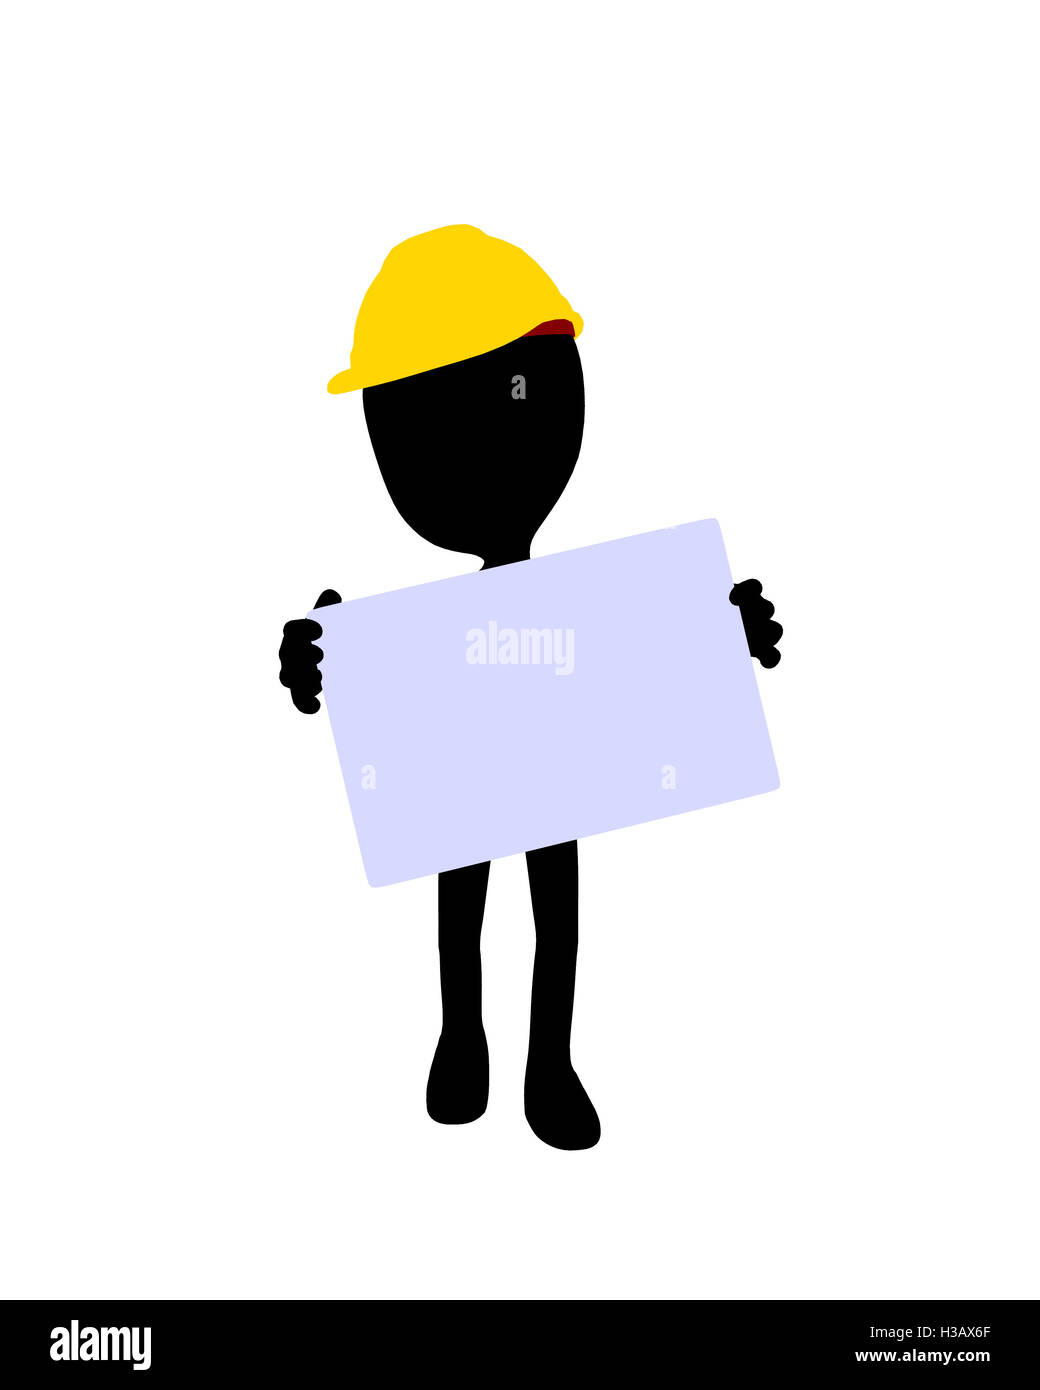 Cute Black Silhouette Construction Guy Holding a Blank Business Card ...